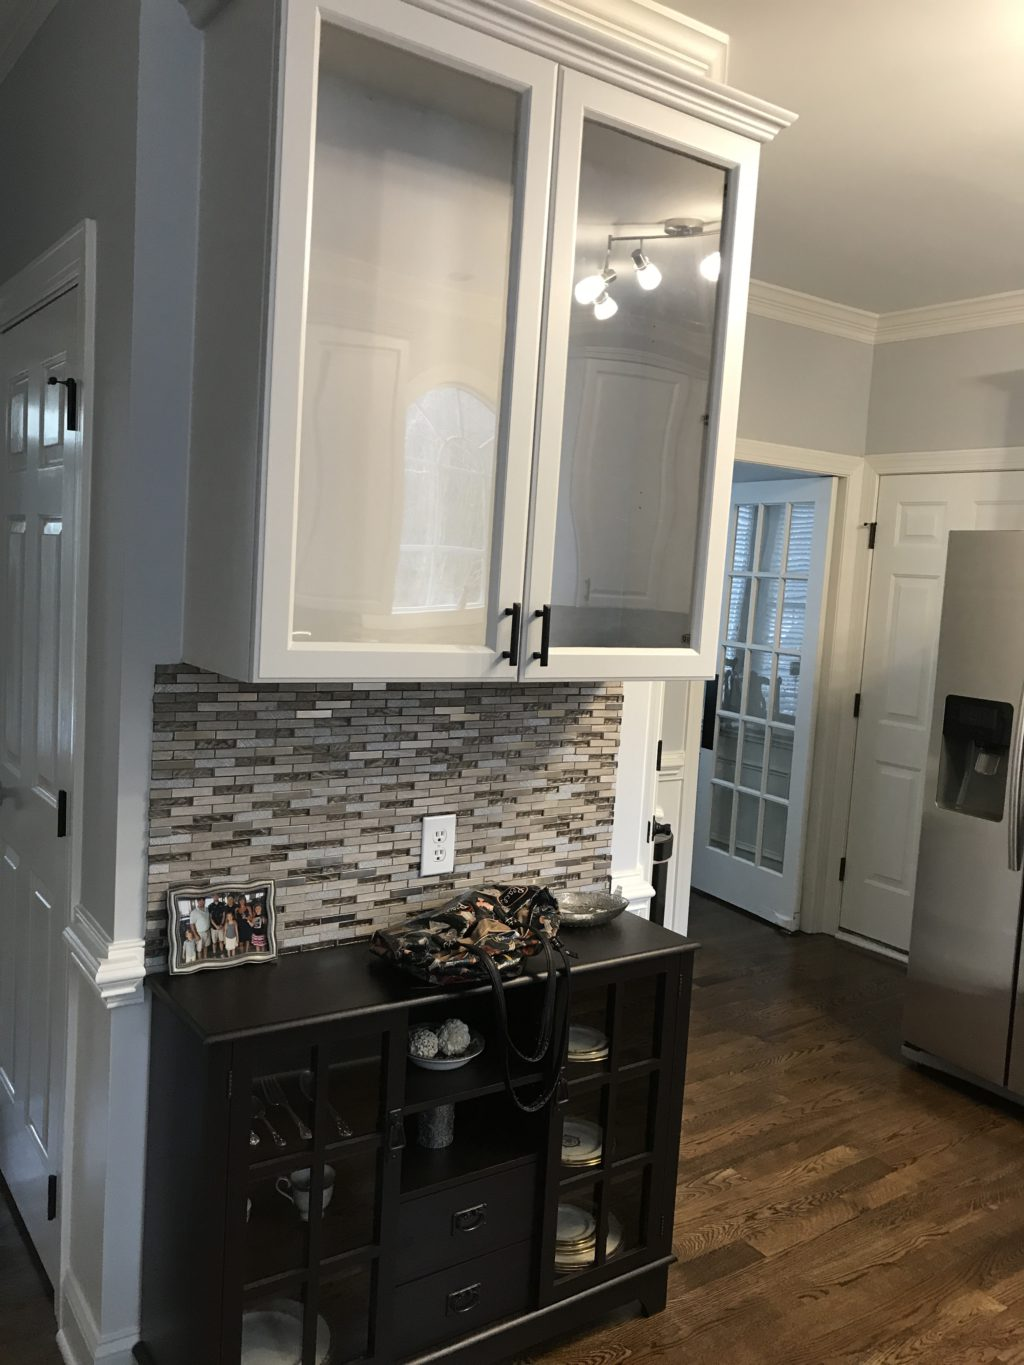 redoing kitchen rustic furniture light french gray update - 2 cabinet girls